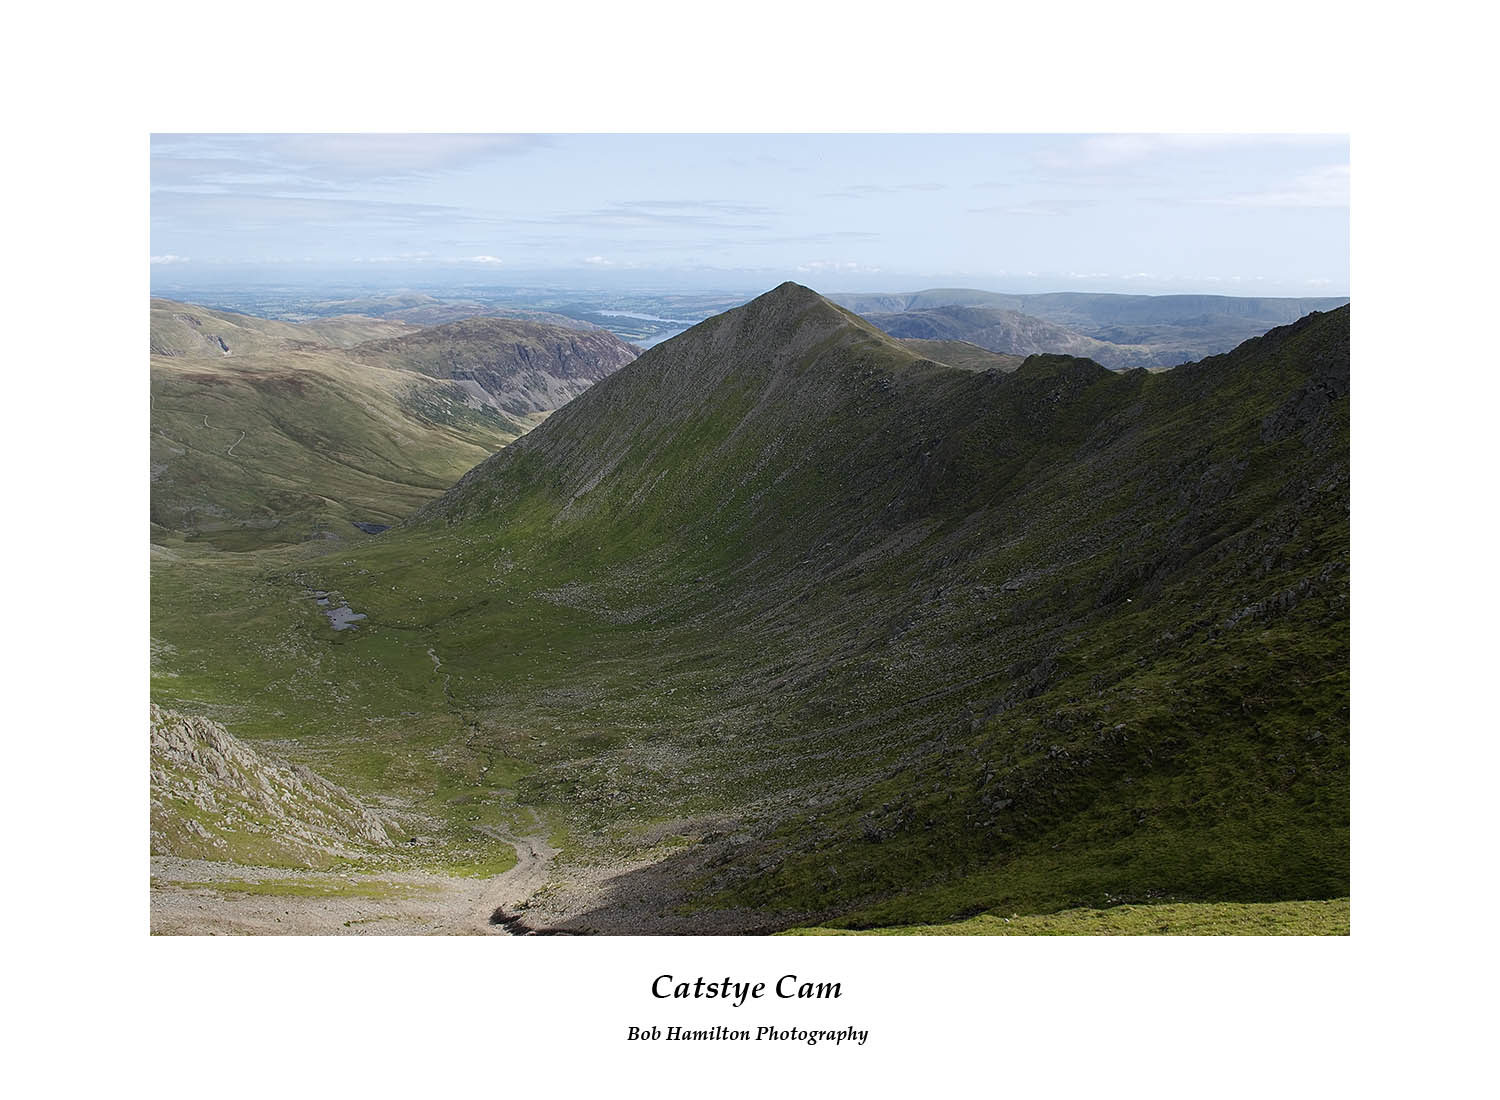 DSF1079 Catstye Cam and Swirral Edge from Helvellyn